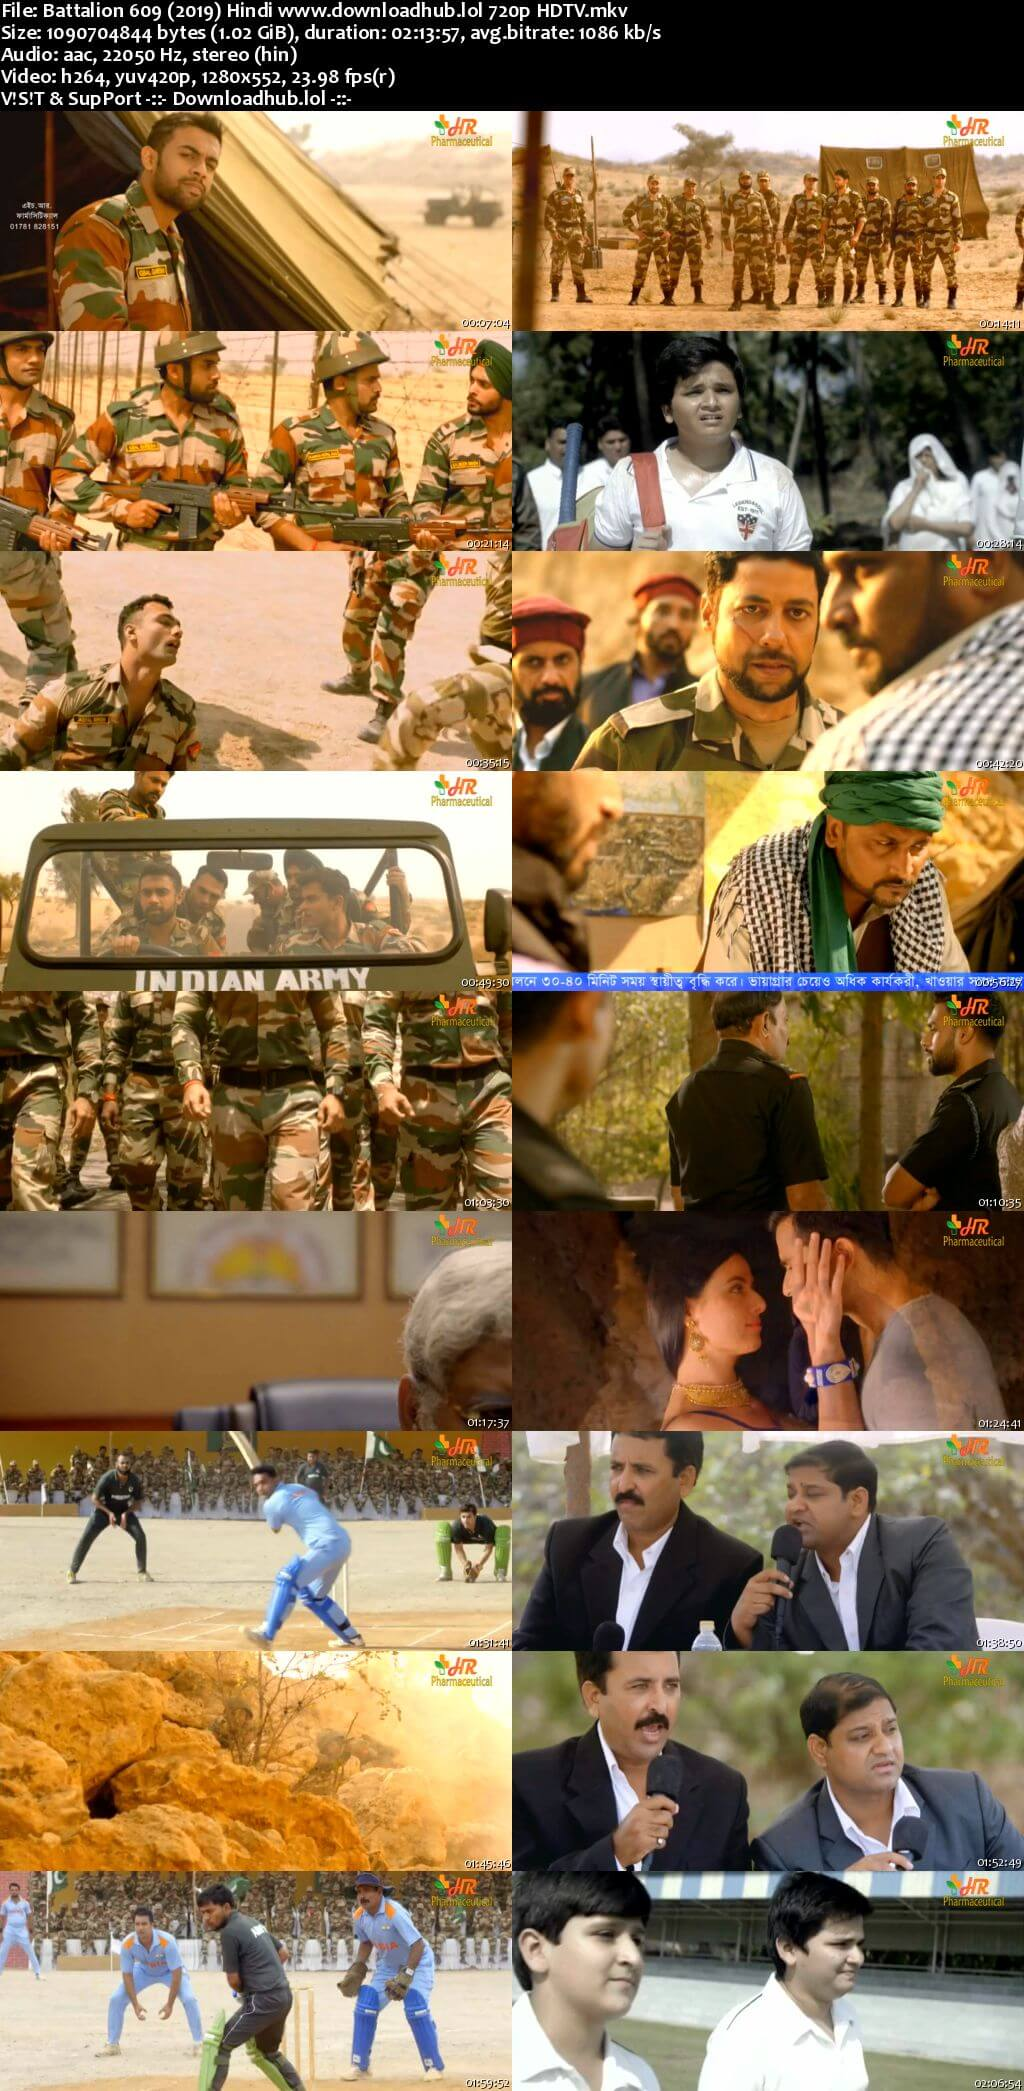 Battalion 609 2019 Hindi 720p HDTV x264